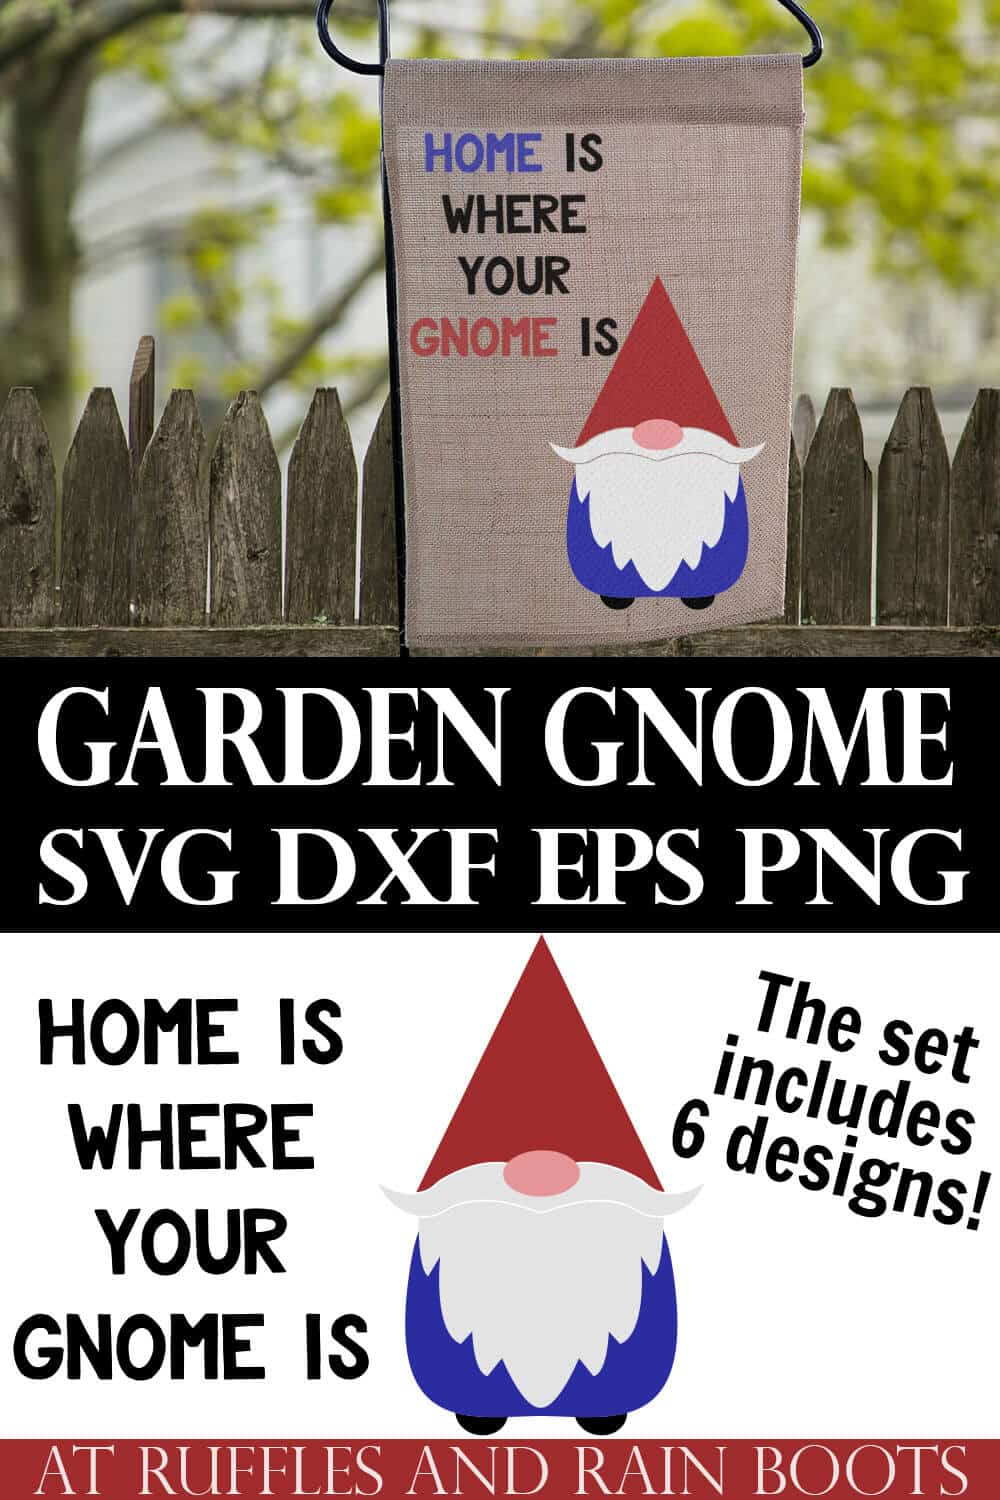 college of garden gnome svg on burlap garden flag with text which reads garden gnome svg dxf png eps